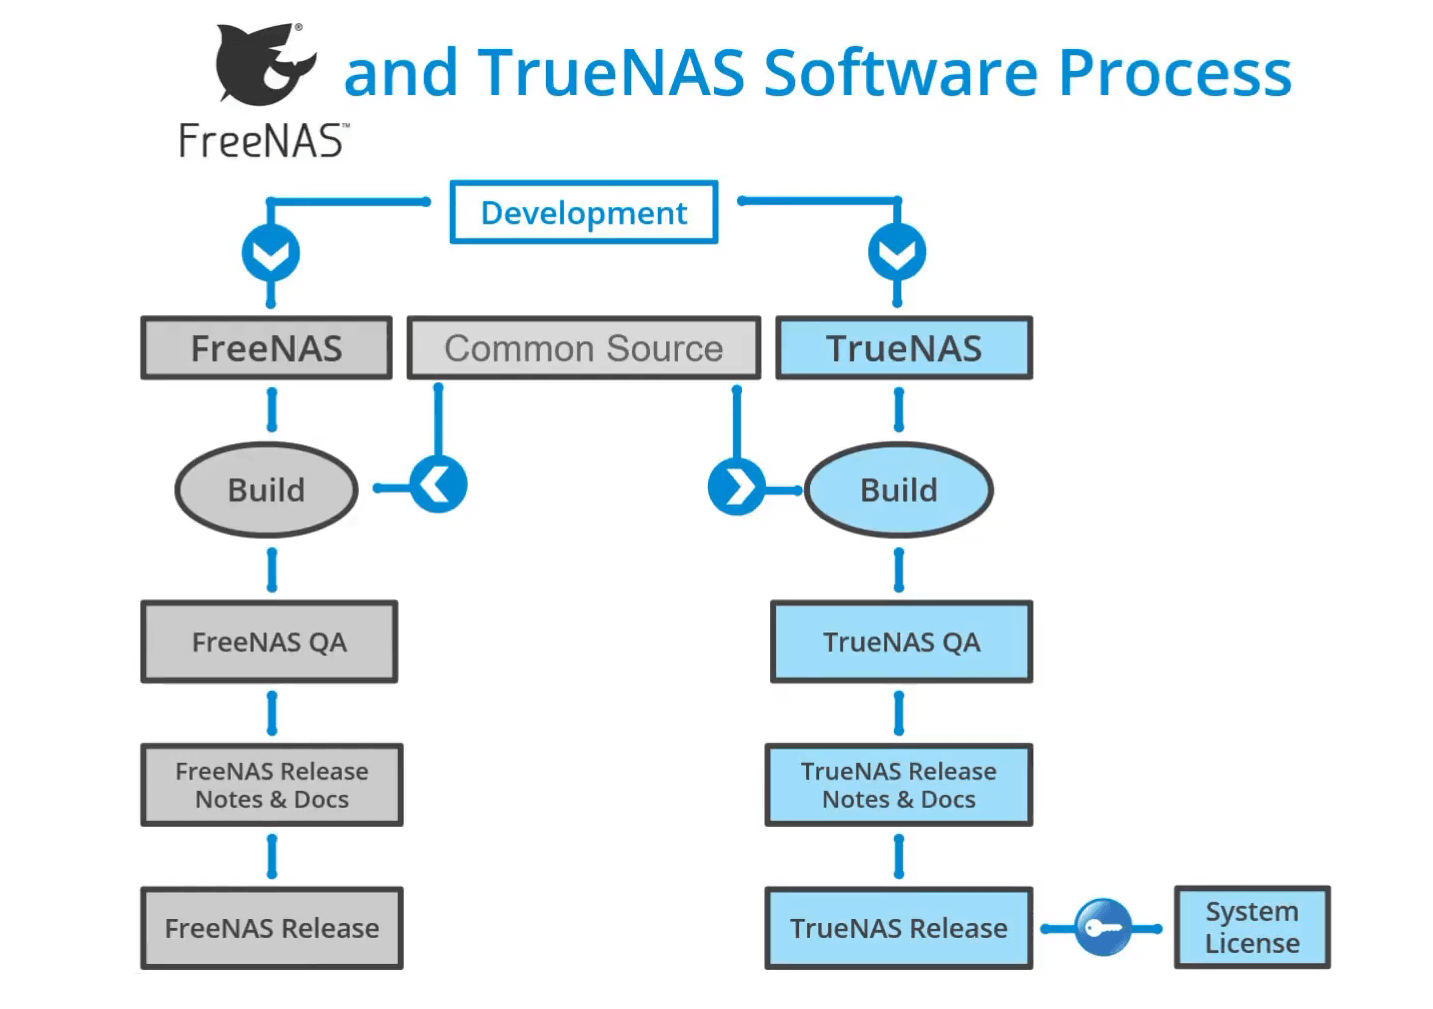 Old FreeNAS vs TrueNAS Software Development Process